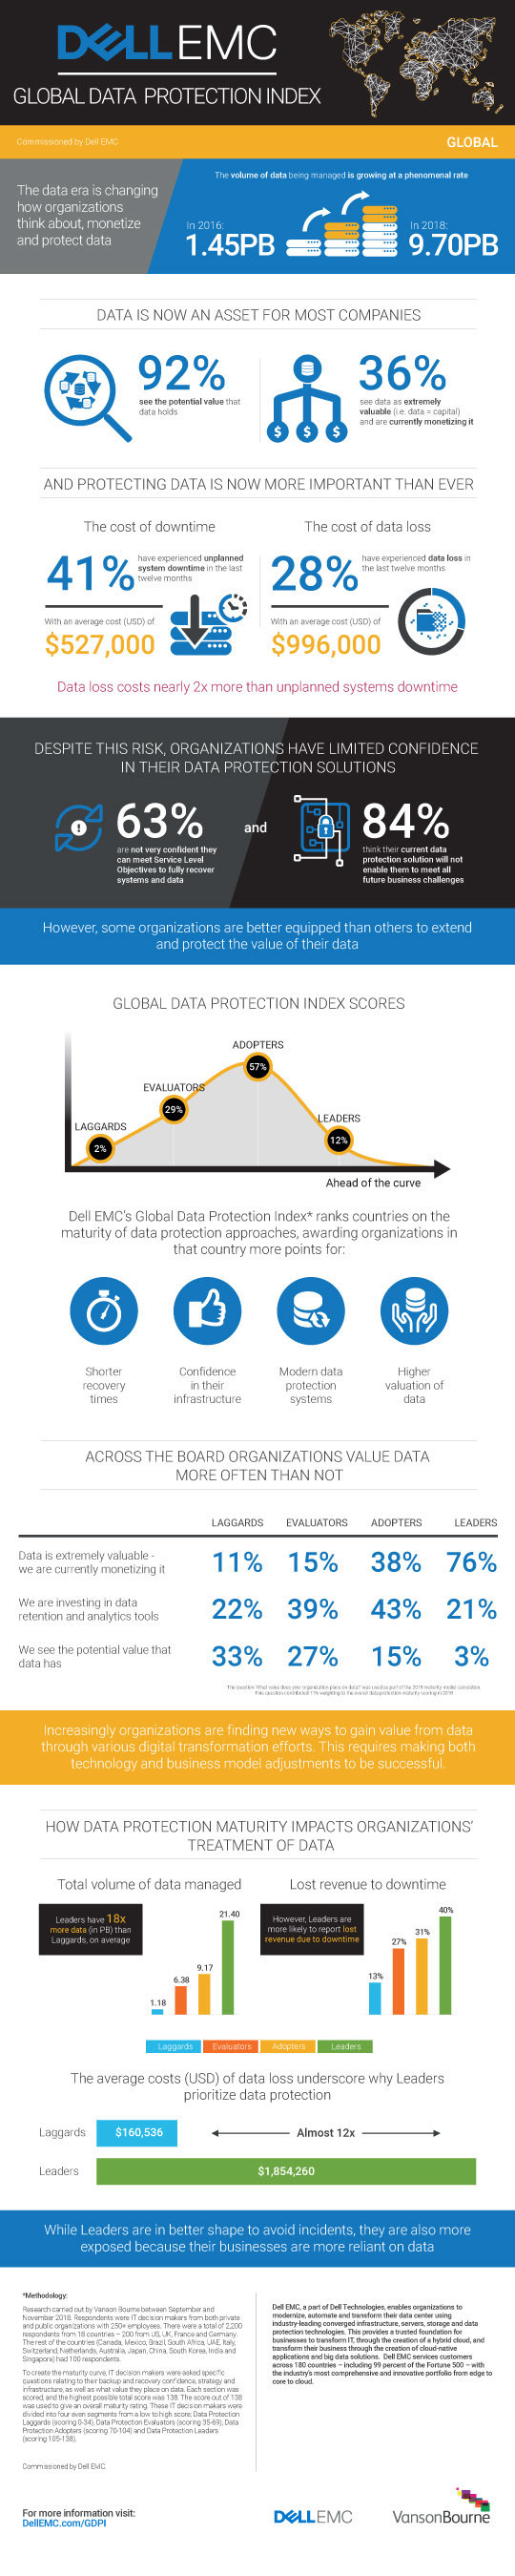 Dell EMC Global Data Protection Index